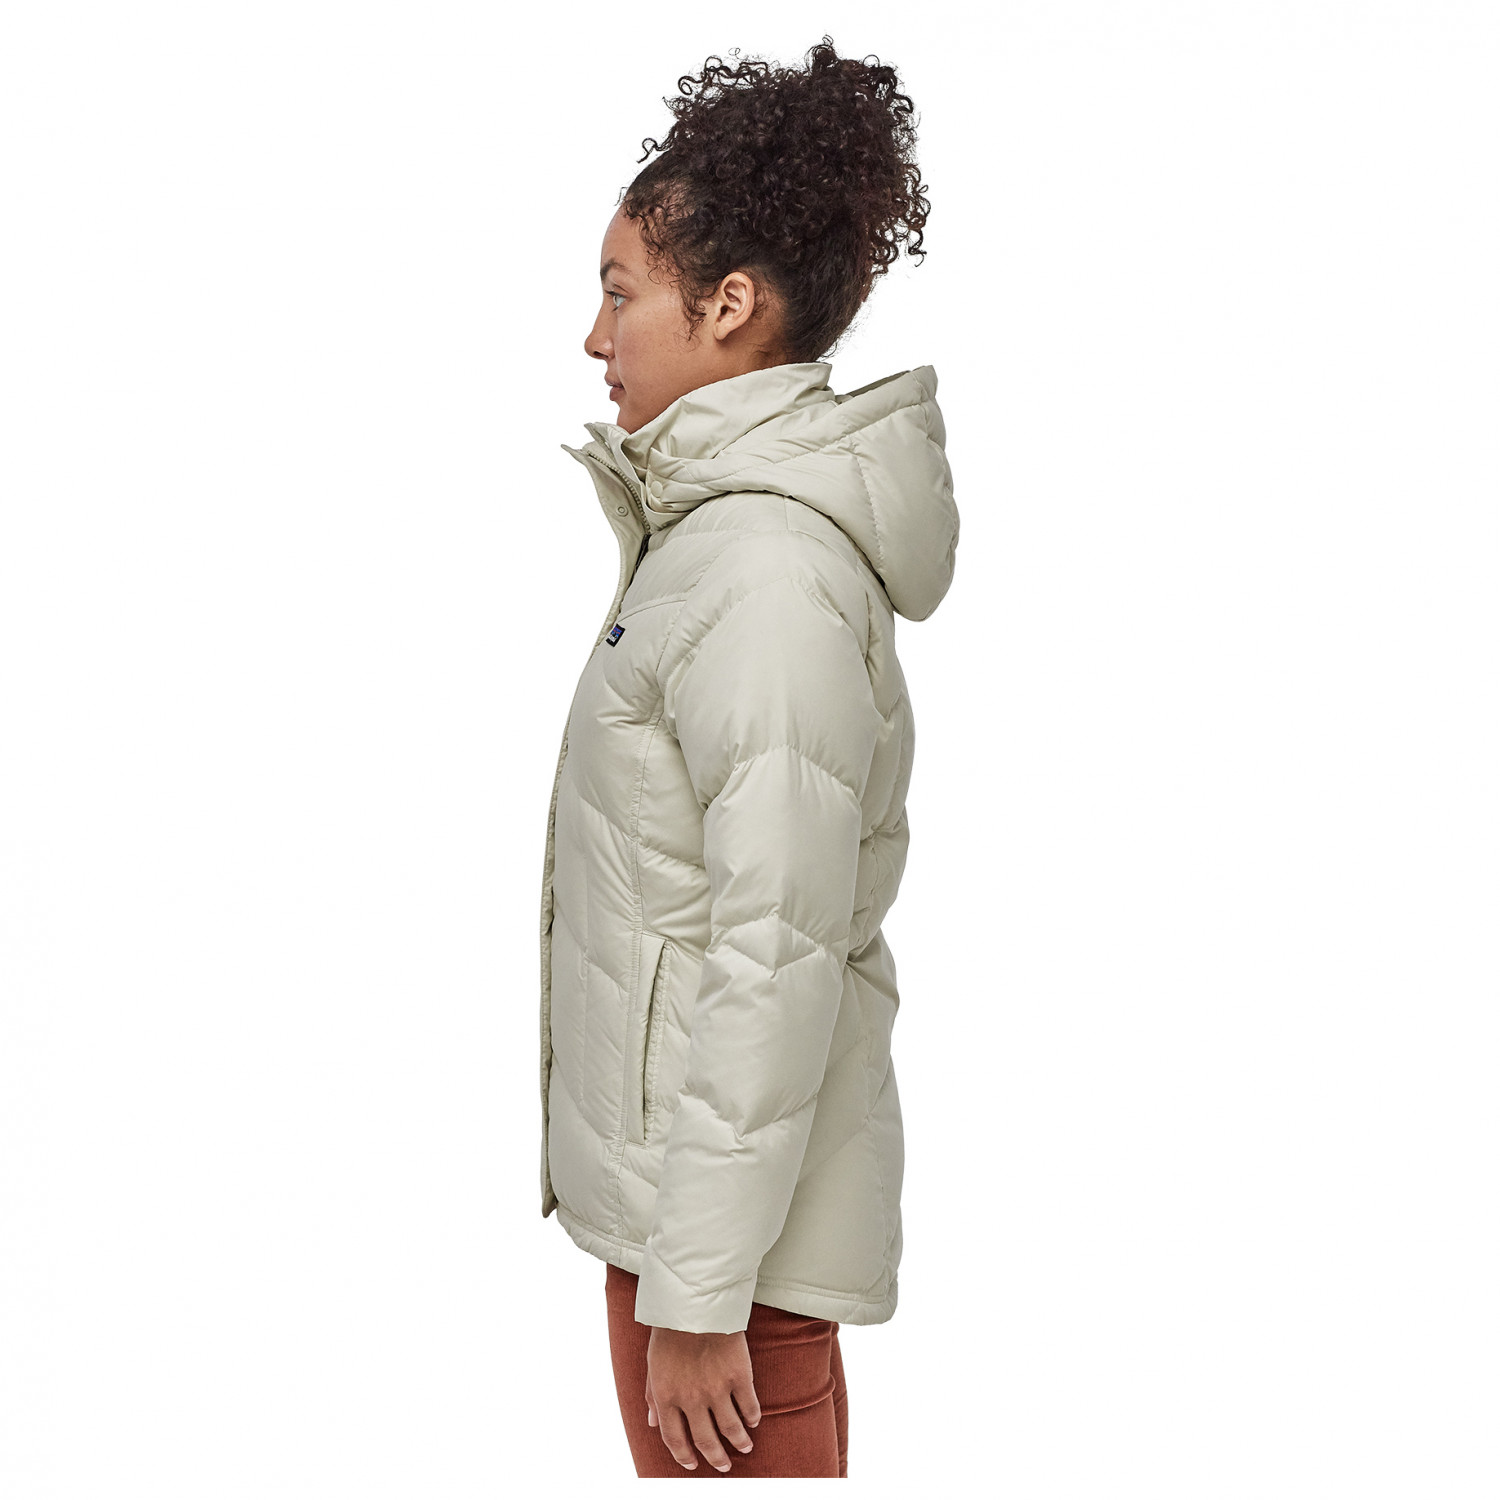 Patagonia Women's Down With It Jacket Down jacket Black | S